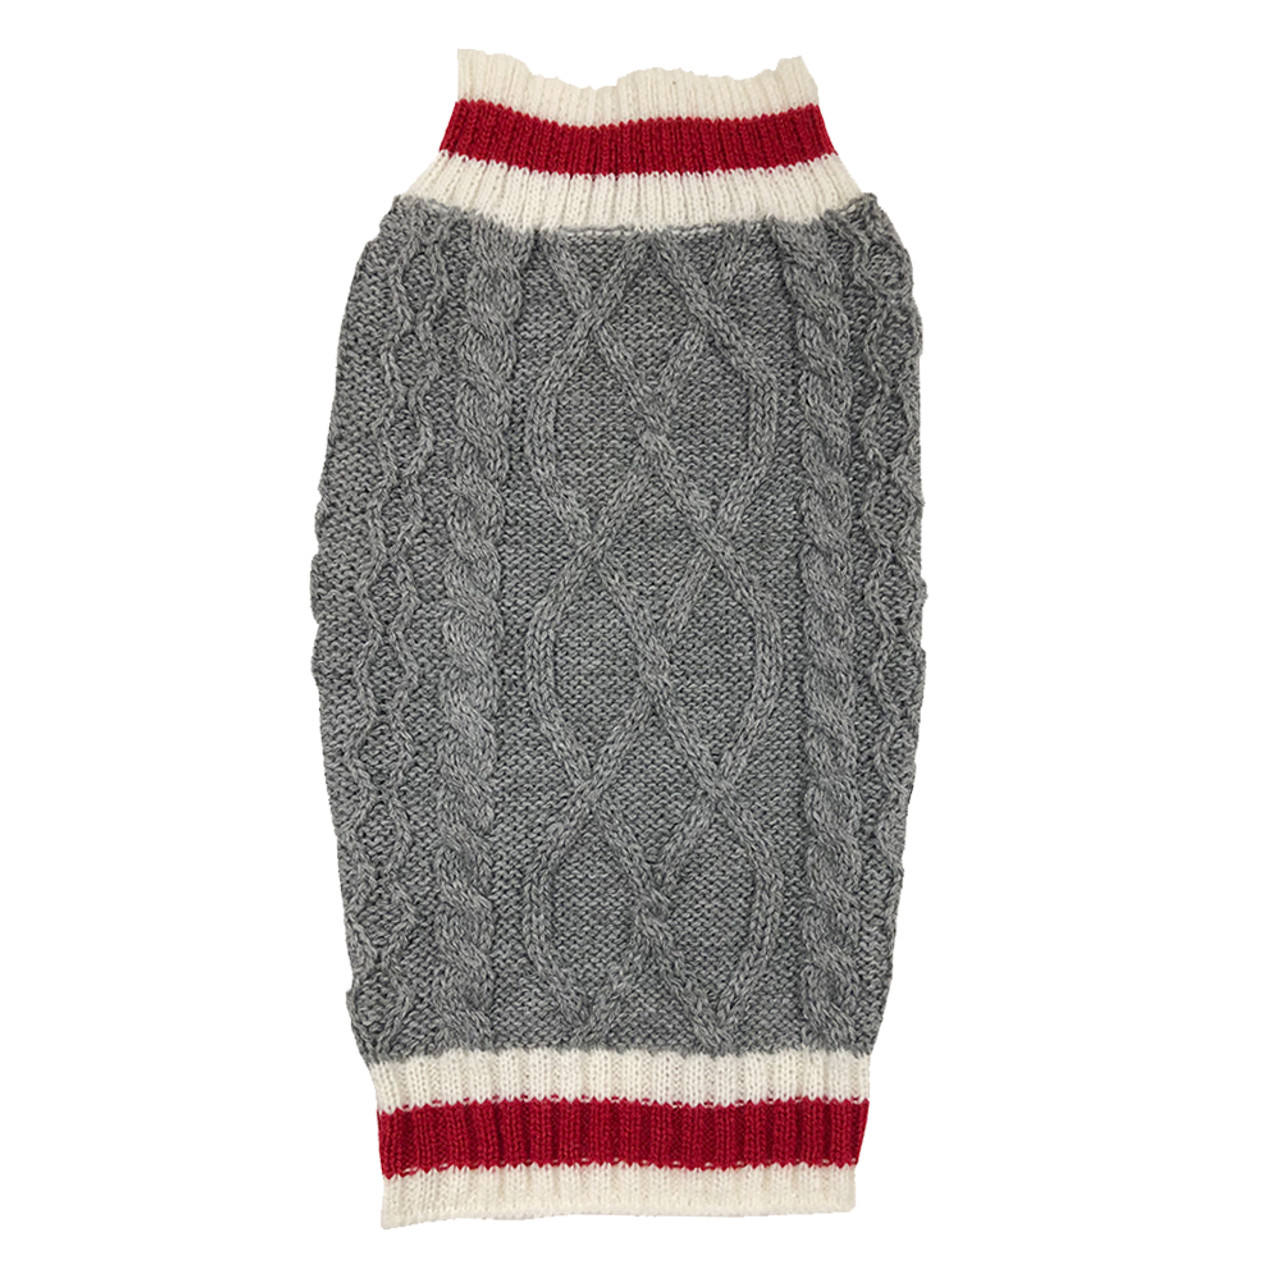 SimplyDog Gray Cable Knit Stripe Dog Sweater